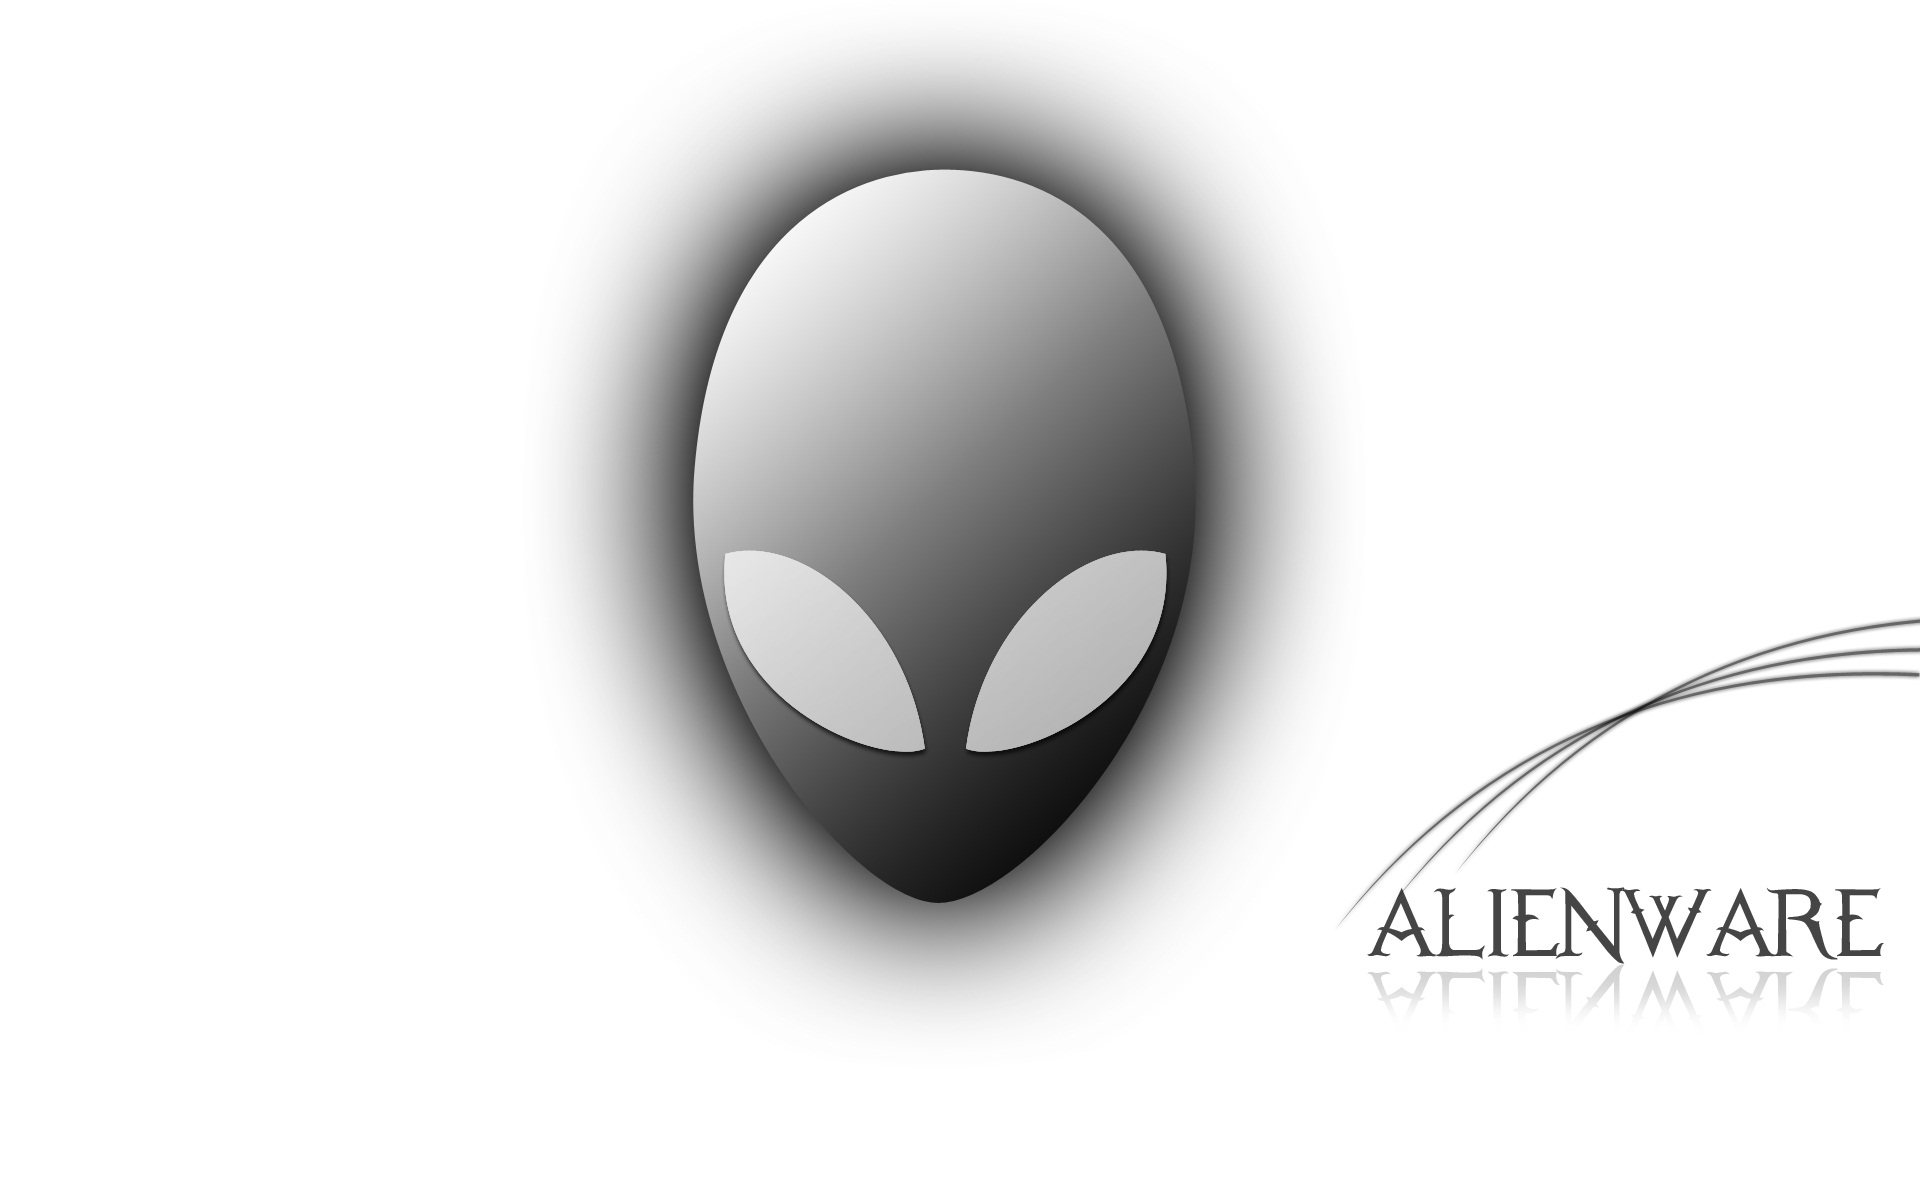 Alienware Alien Head